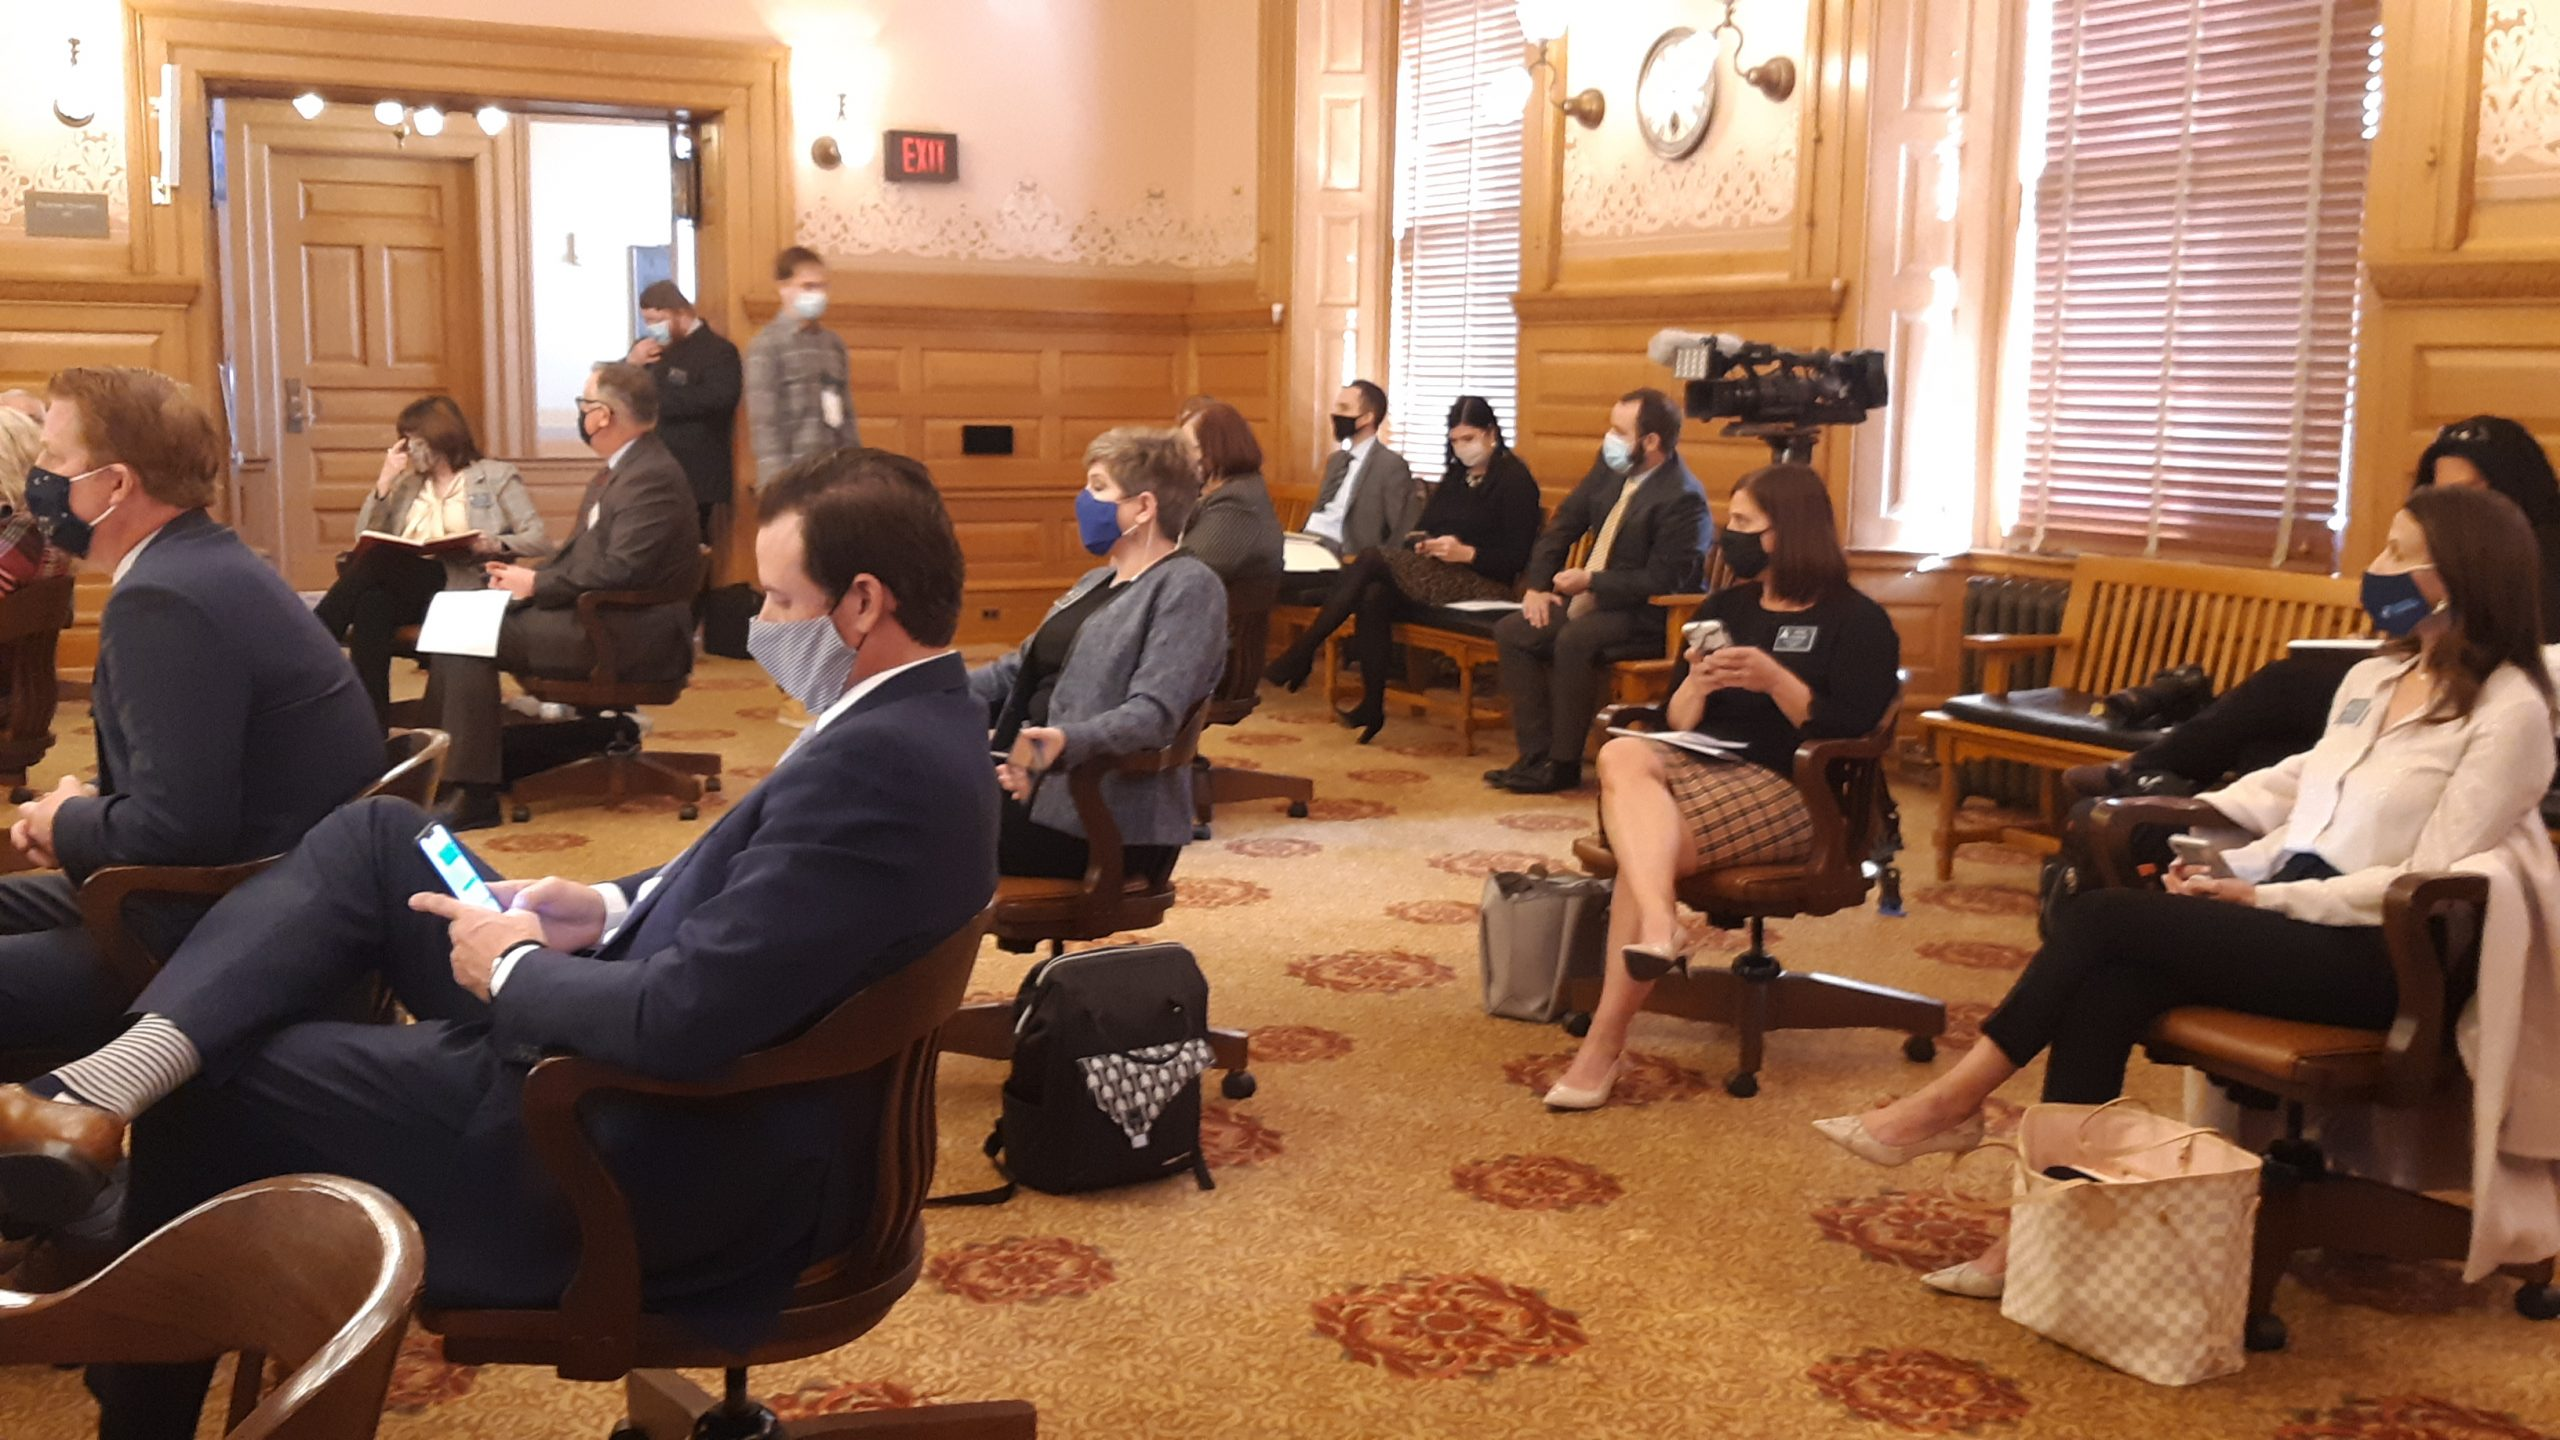 Lobbyists socially distance during a Senate Judicary Committee hearing Tuesday on extension until March 31 of a law detailing state and local government authority for responding to the COVID-19 pandemic. The House is working on a comparable bill. (Tim Carpenter/Kansas Reflector)